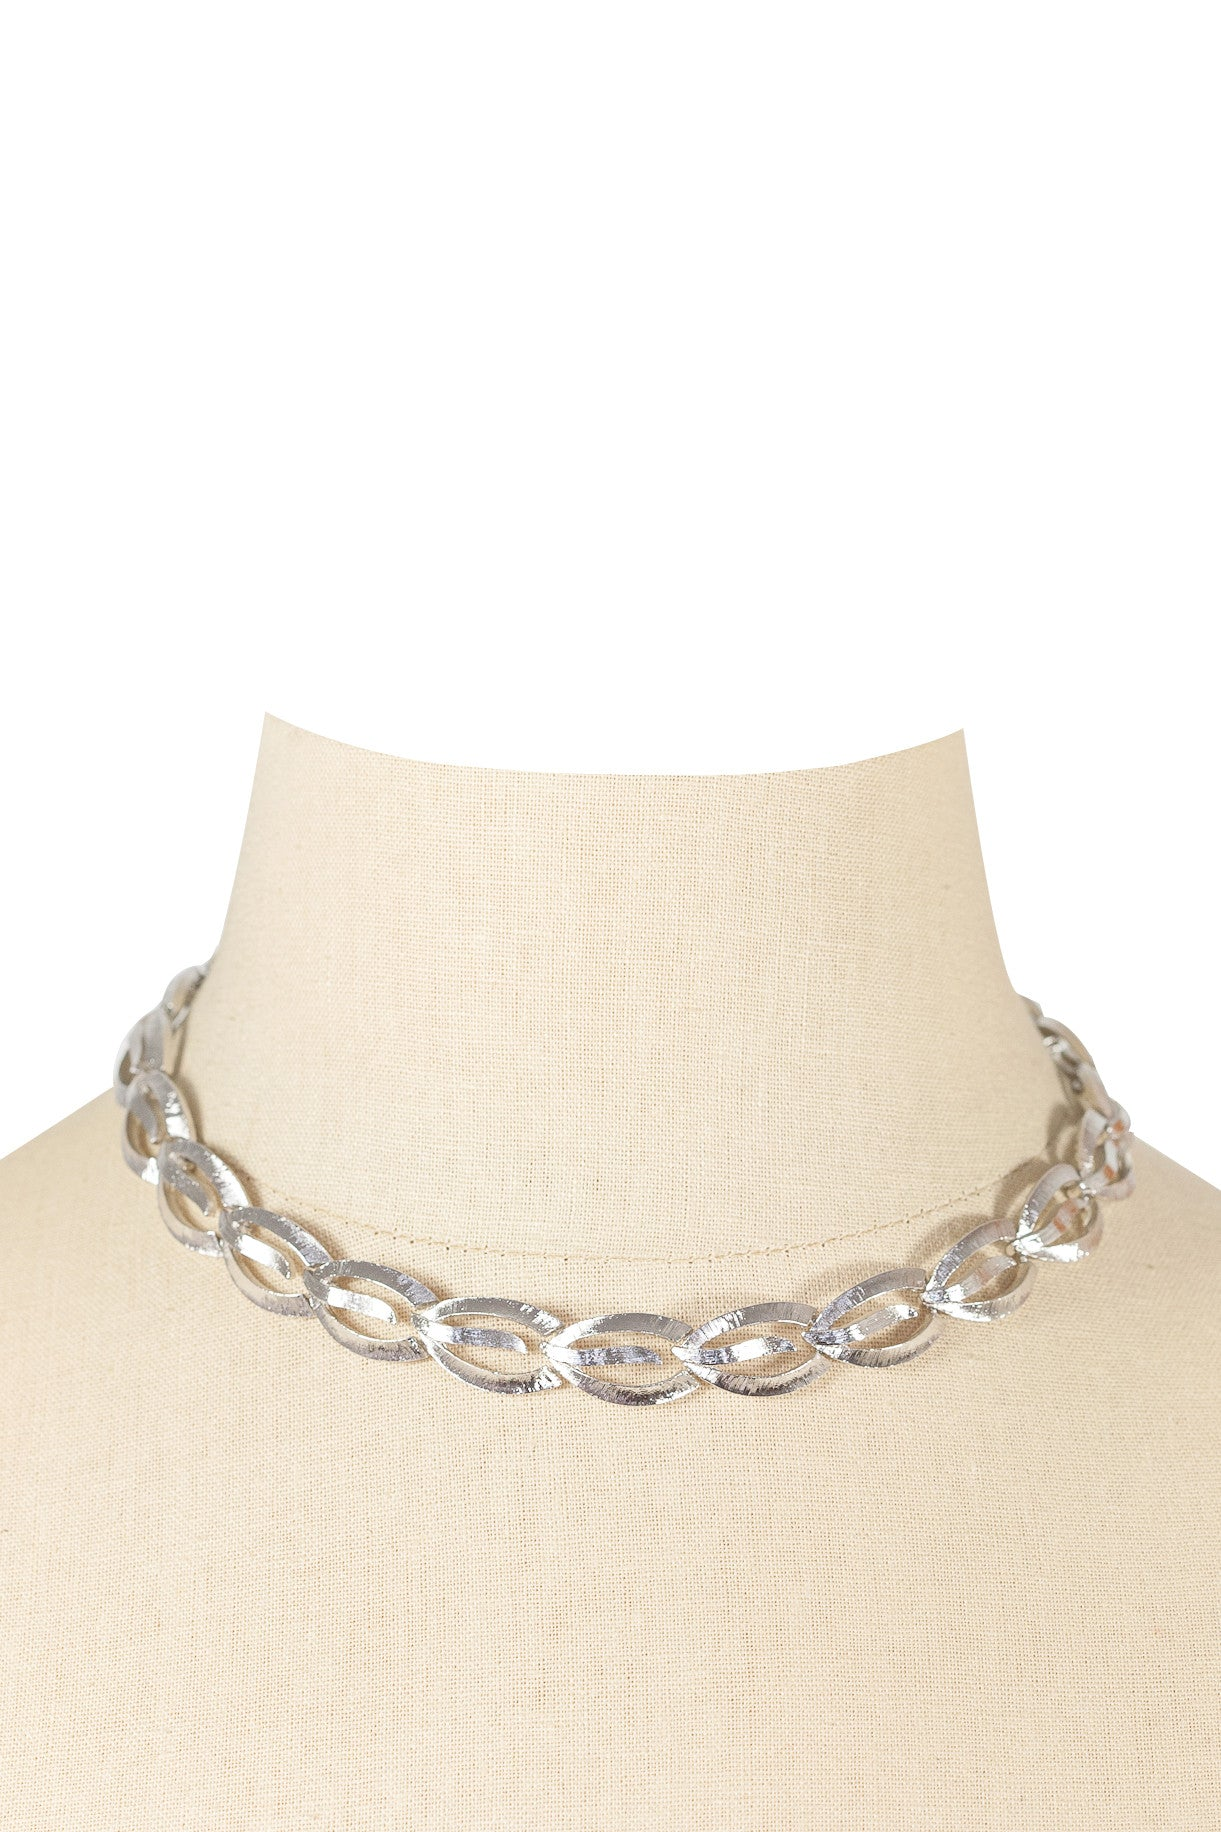 70's__Monet__Silver Statement Necklace